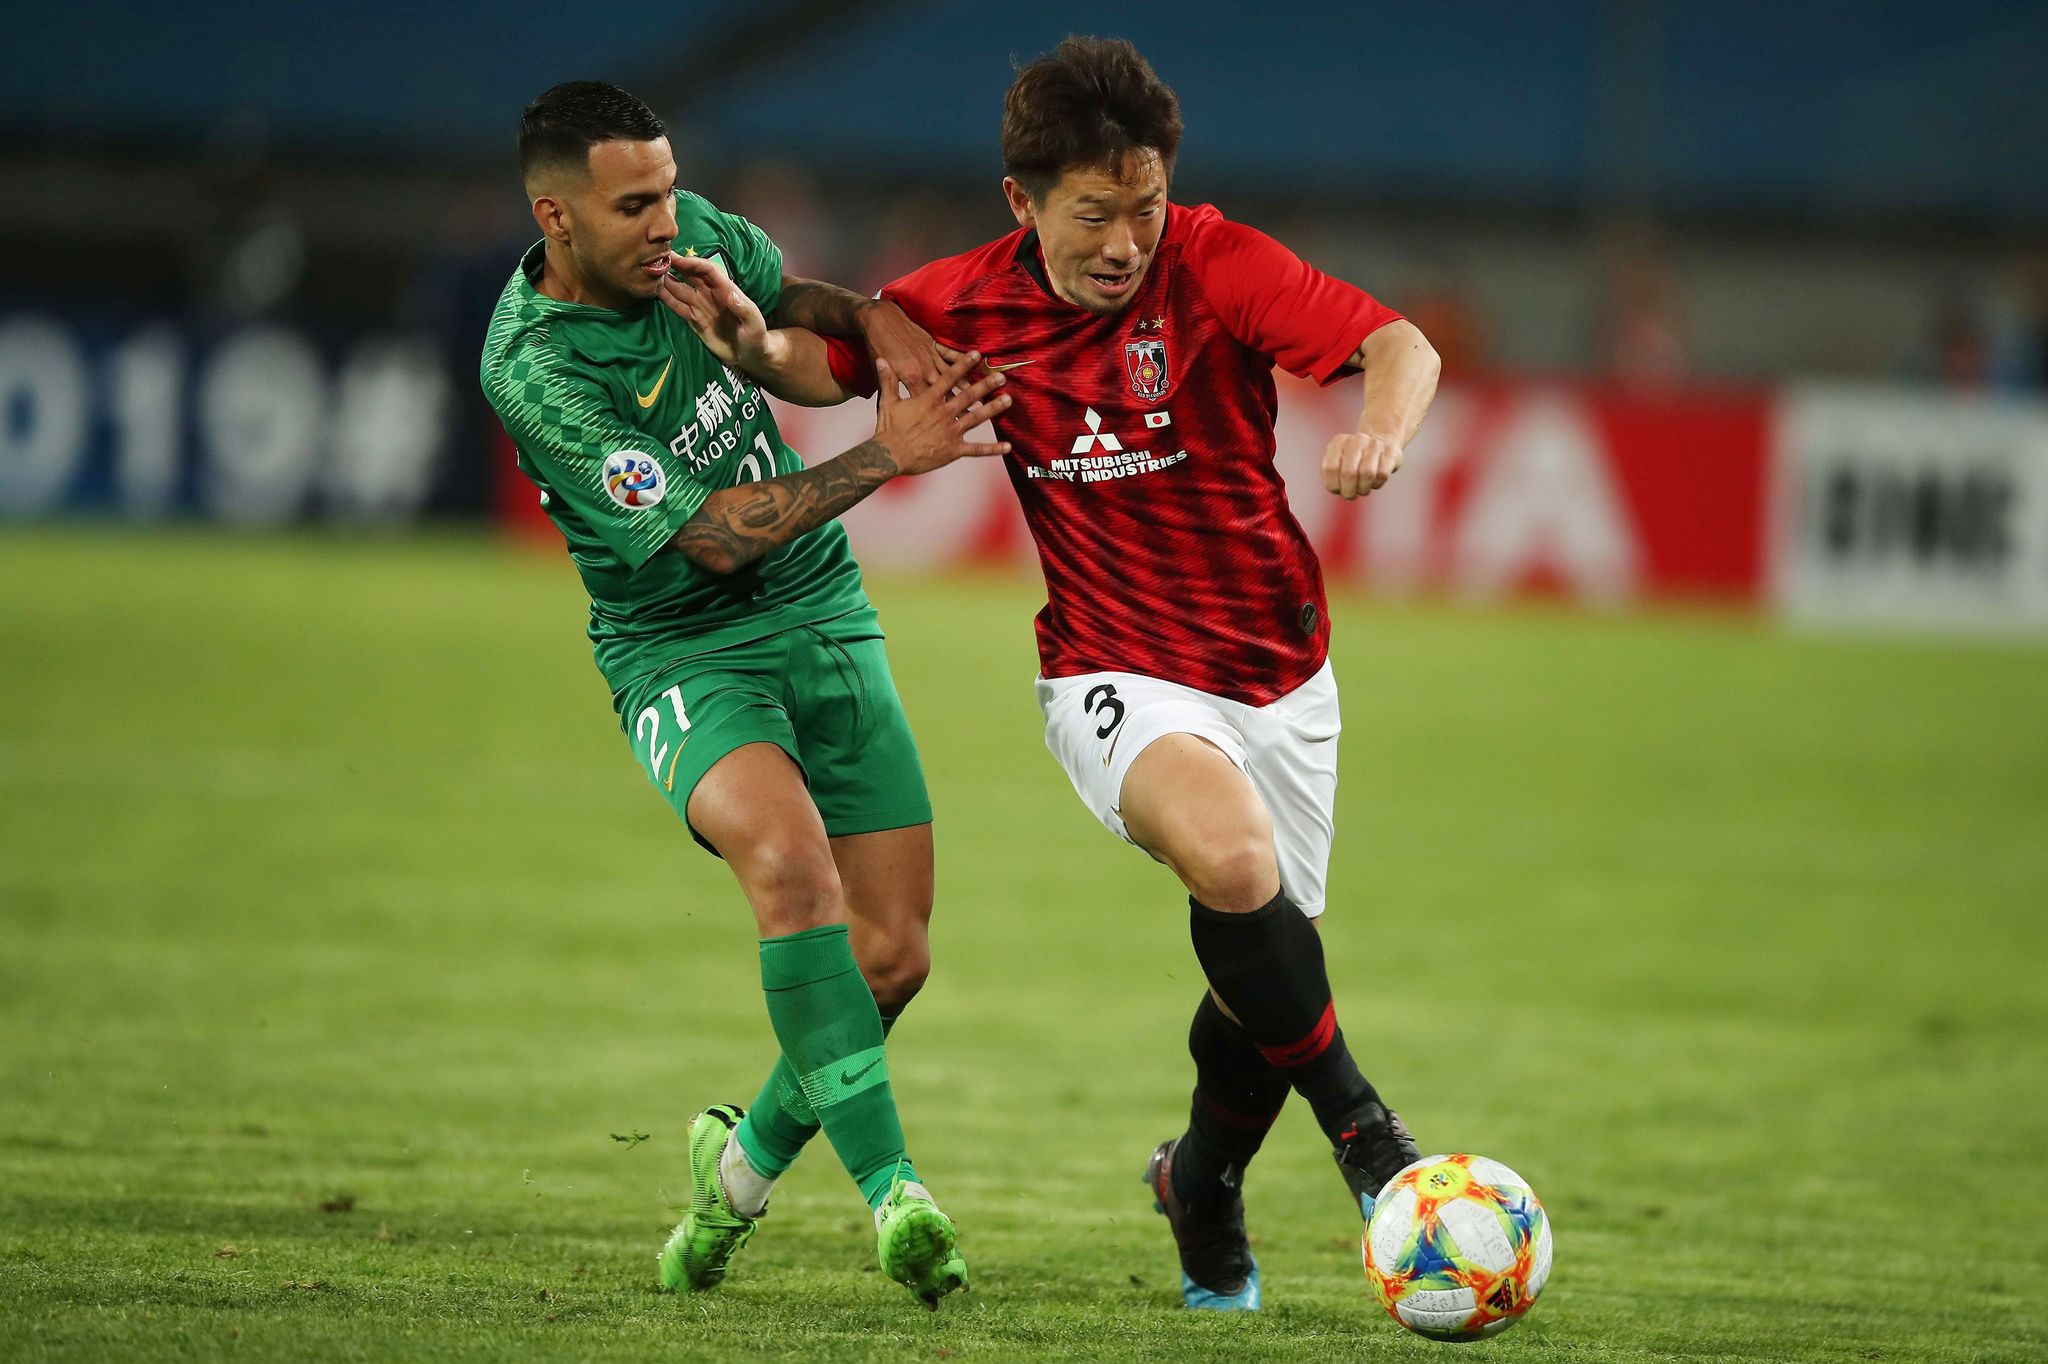 <HIT>Jonathan</HIT><HIT>Viera</HIT> (L) of Chinas Beijing Guoan fights for the ball with Tomoya Ugajin of Japans Urawa Red Diamonds during their AFC Champions League group stage football match in Beijing on March 13, 2019. (Photo by STR / AFP) / China OUT